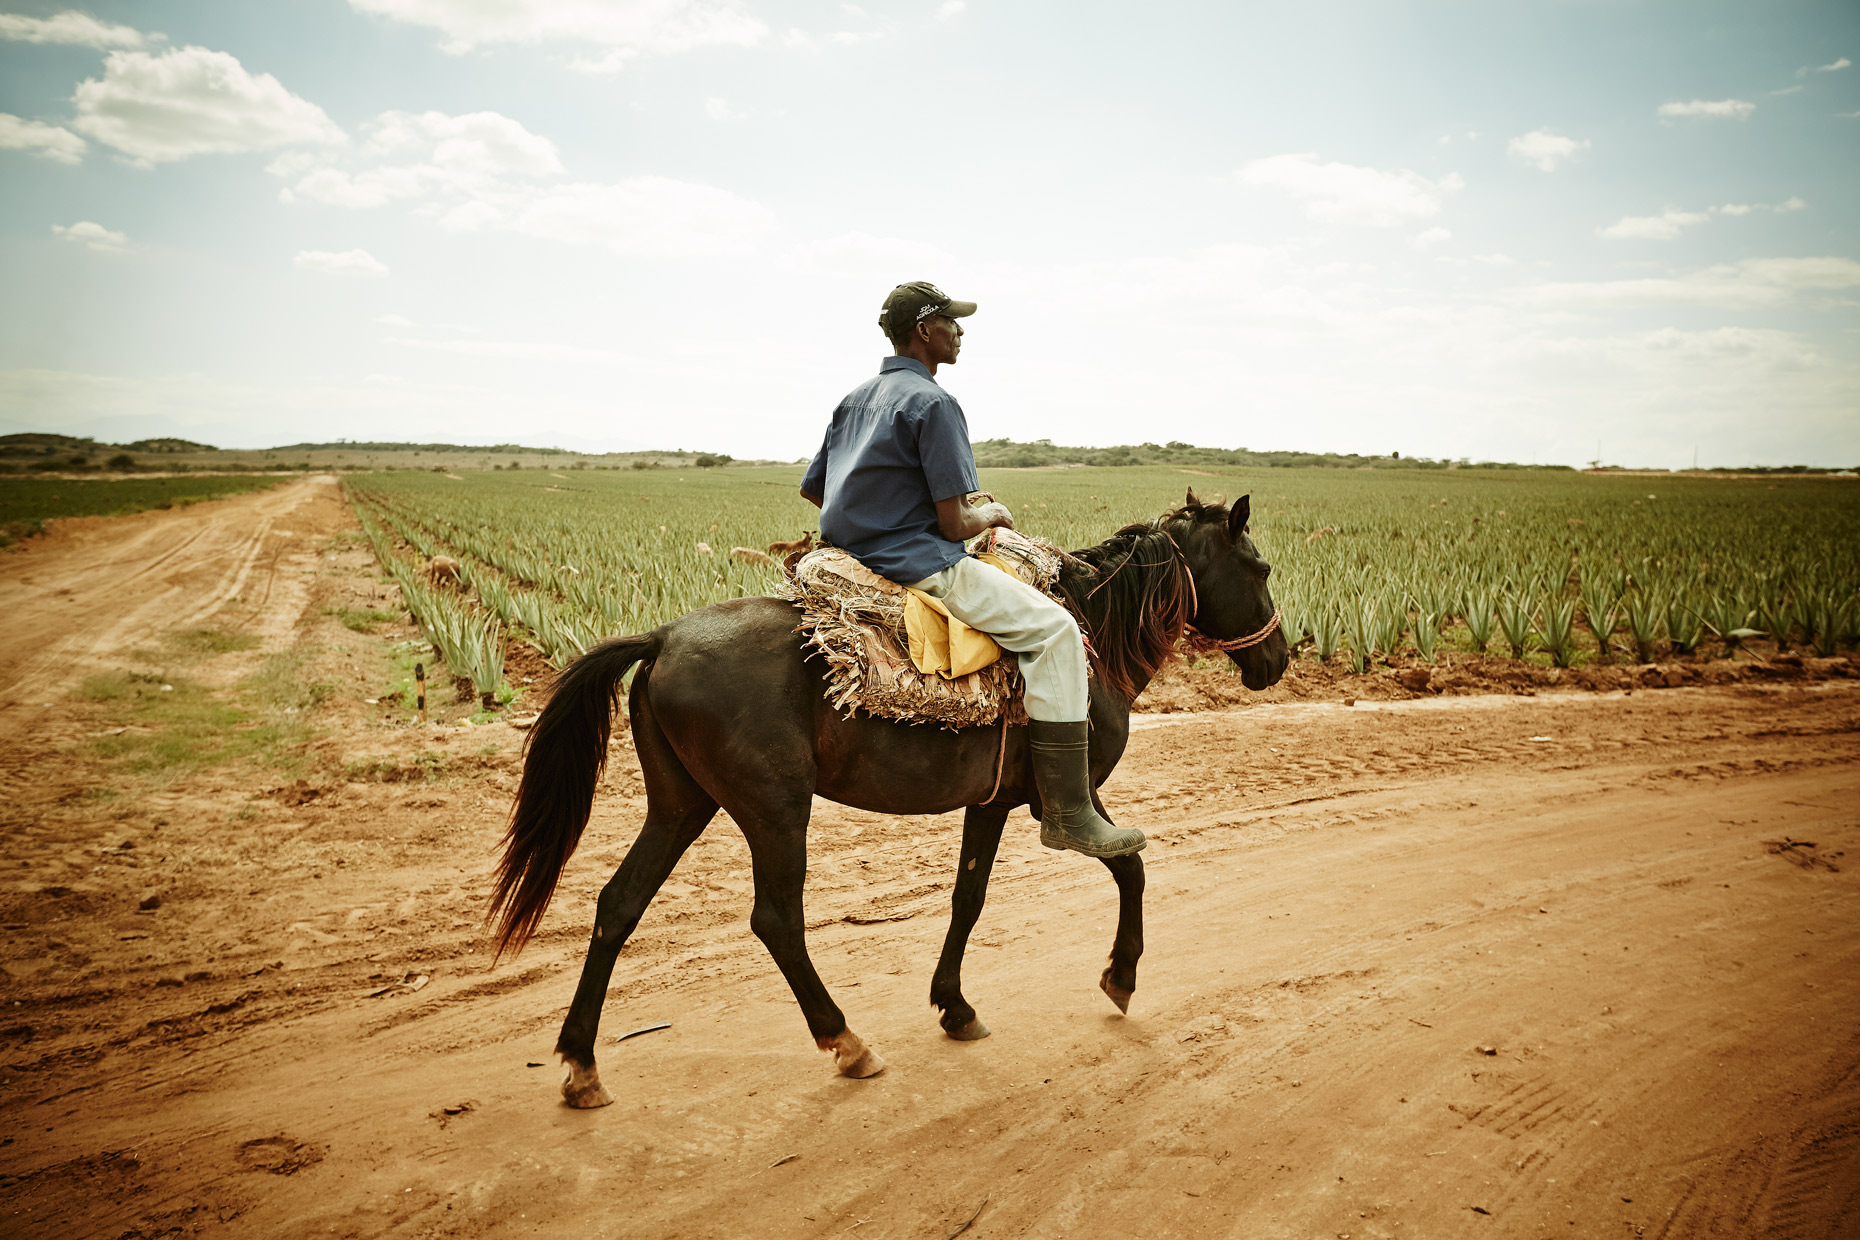 Projects Travel Photography Domincan Republic Derek Israelsen Horseback Riding